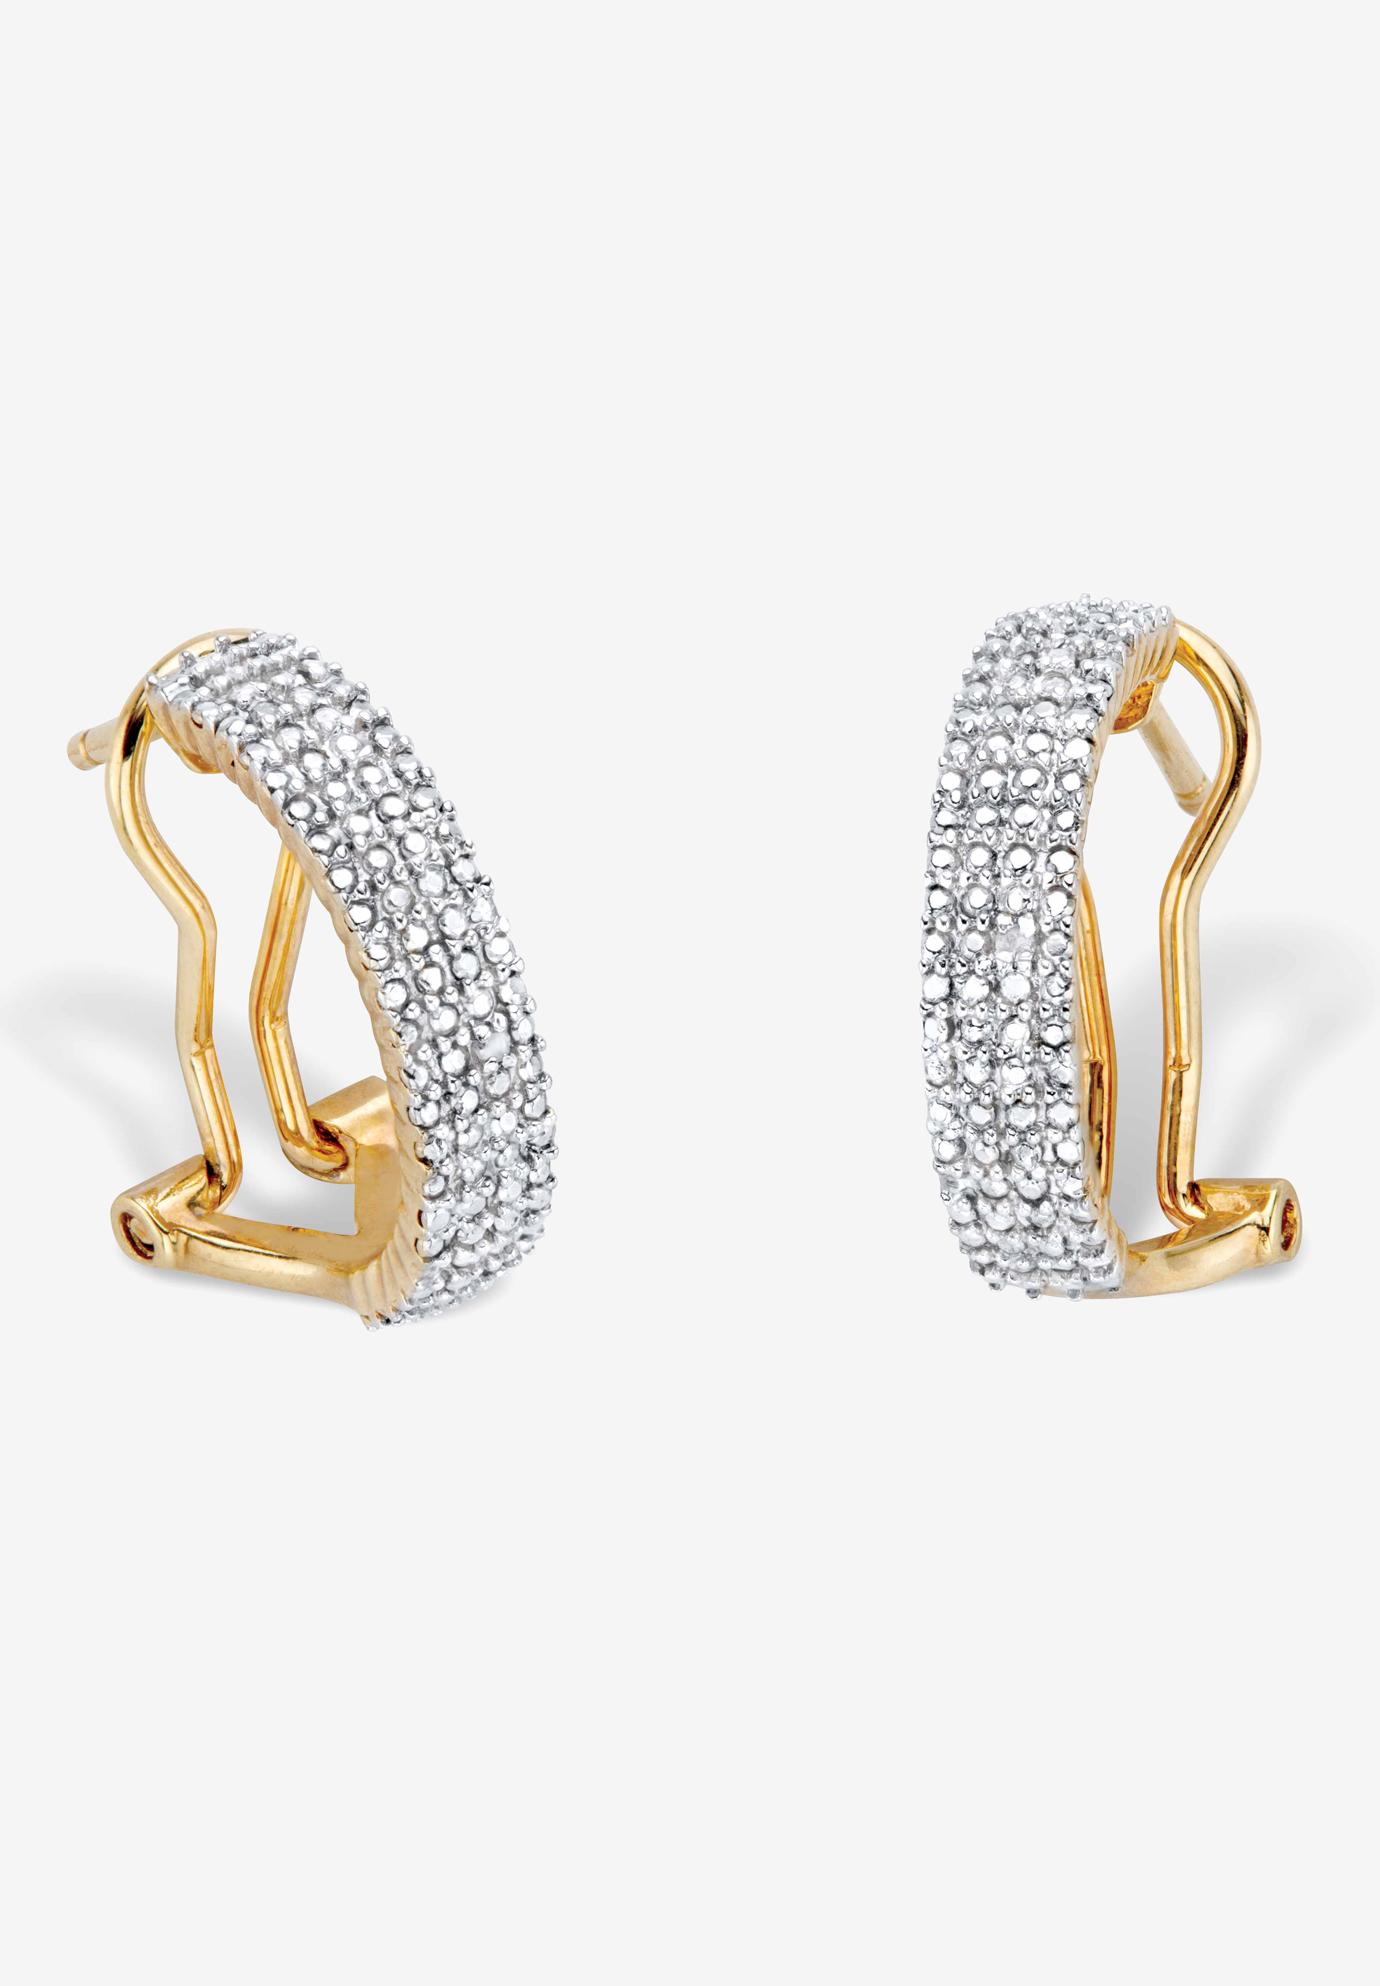 Yellow Gold-Plated Demi Hoop Earrings with Genuine Diamond Accents, DIAMOND